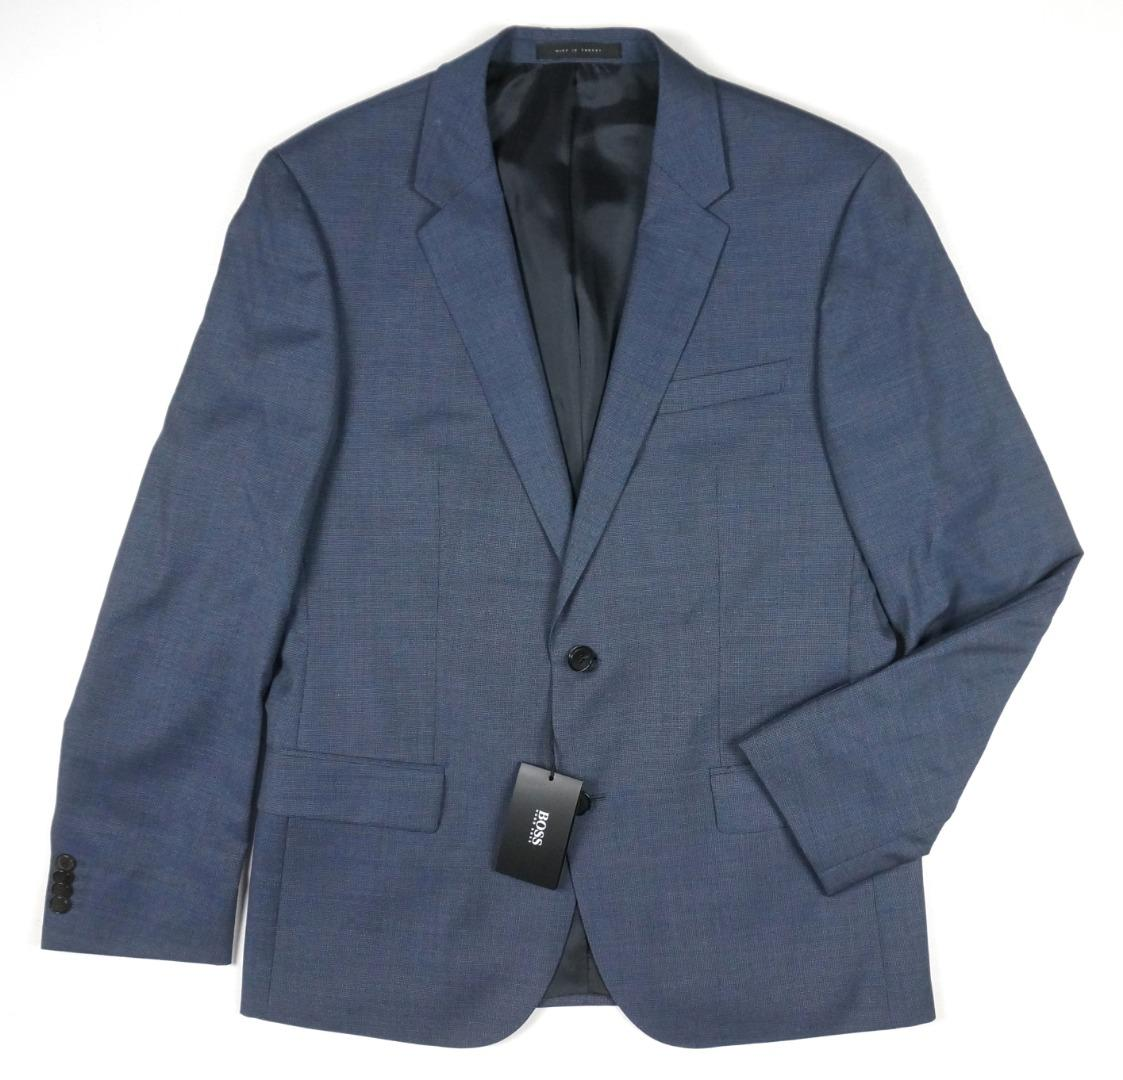 d1491ec15 Details about NEW HUGO BOSS BLUE SUPER 120'S VIRGIN WOOL SLIM HALSEY2  MERRILL2 SUIT 40S